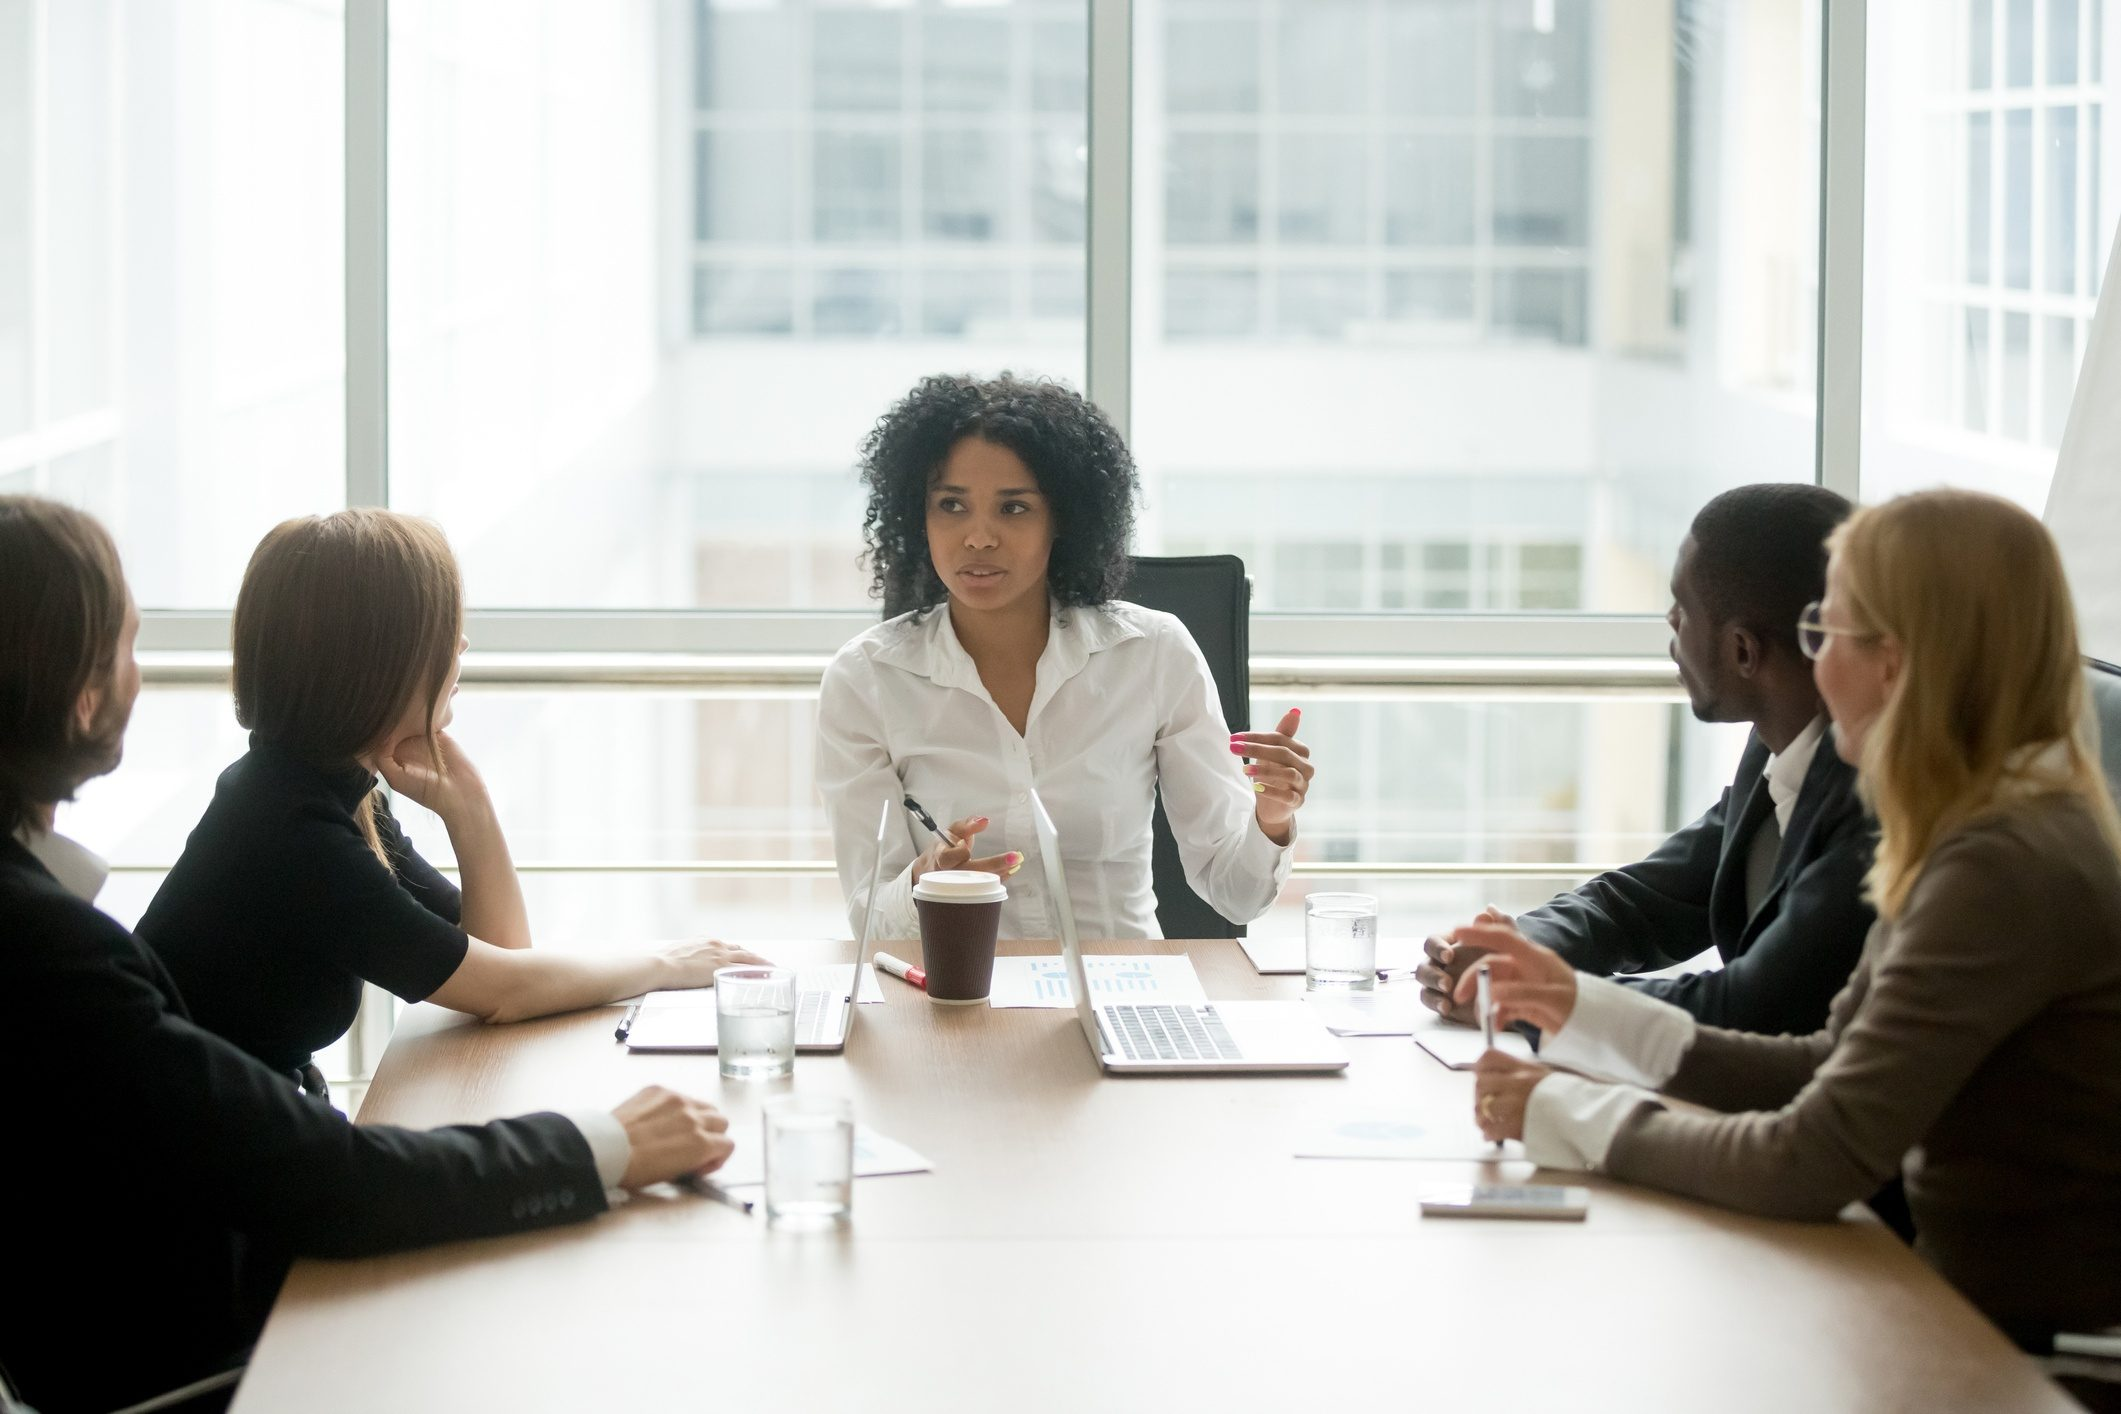 Bosses Face More Discrimination If They Are Women – From Employees Of Any Gender